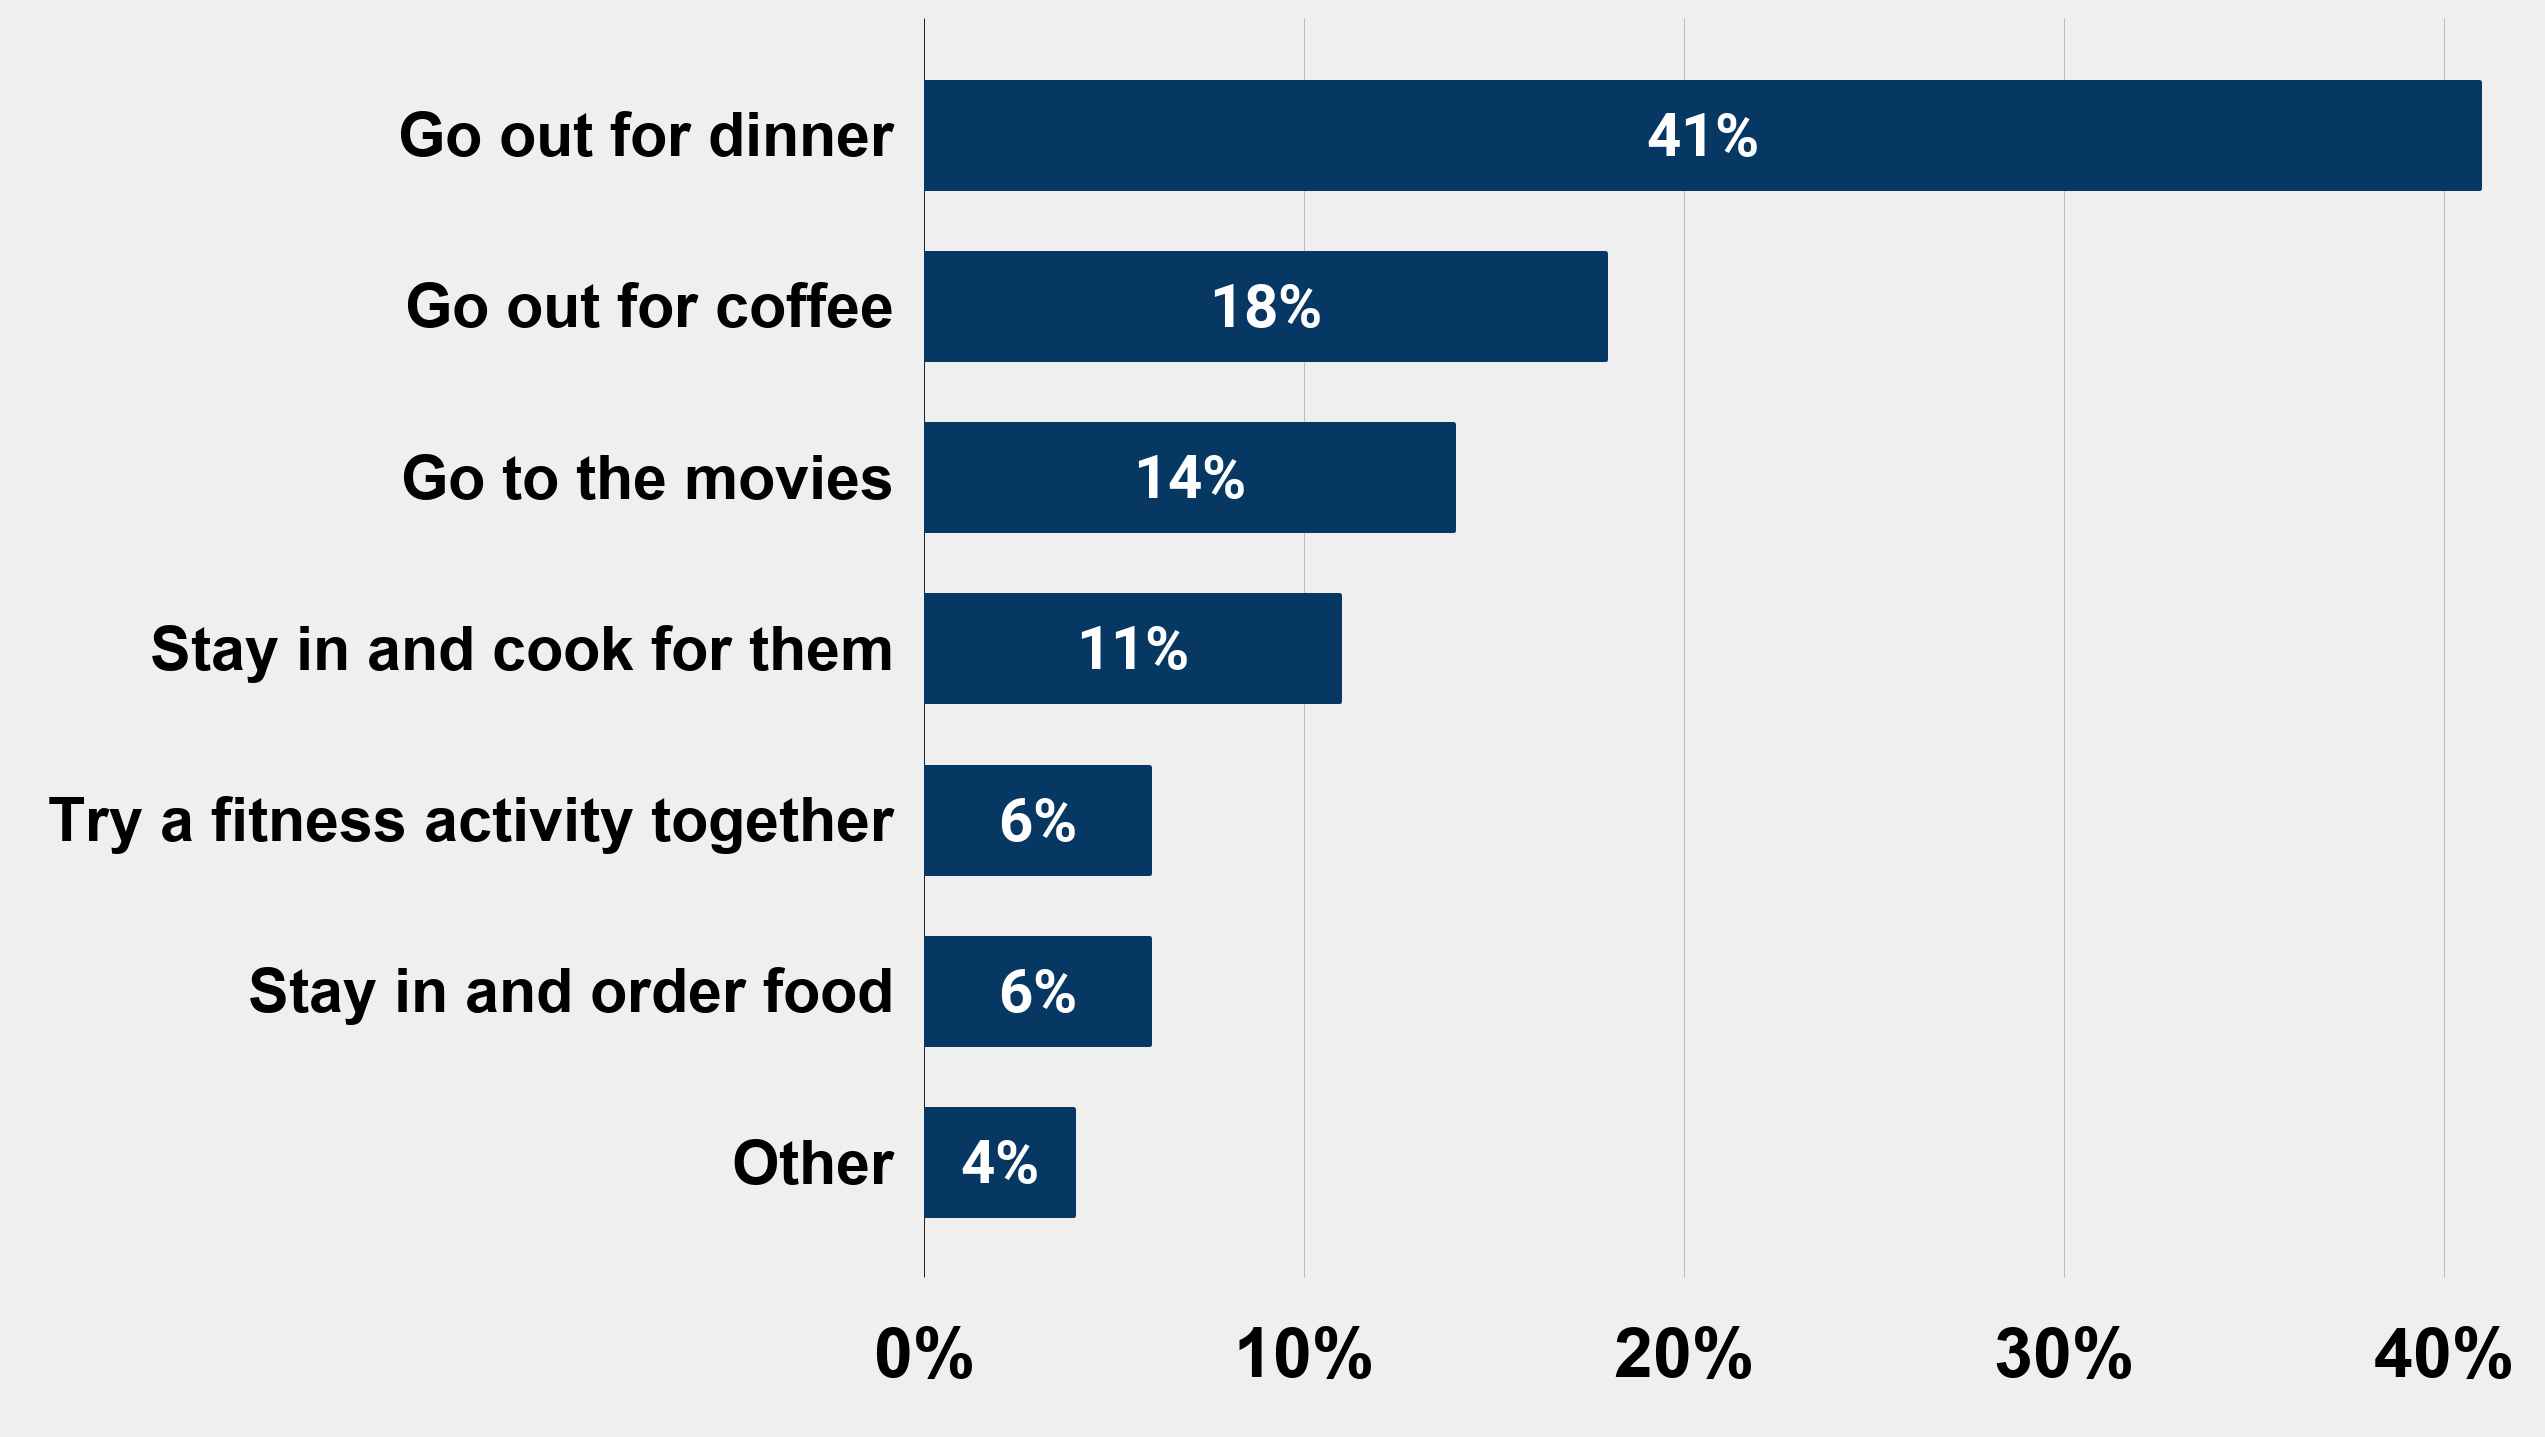 What's your go-to first date idea (According to 1,000 men) U.S. 2019 Charts Graphs Stats